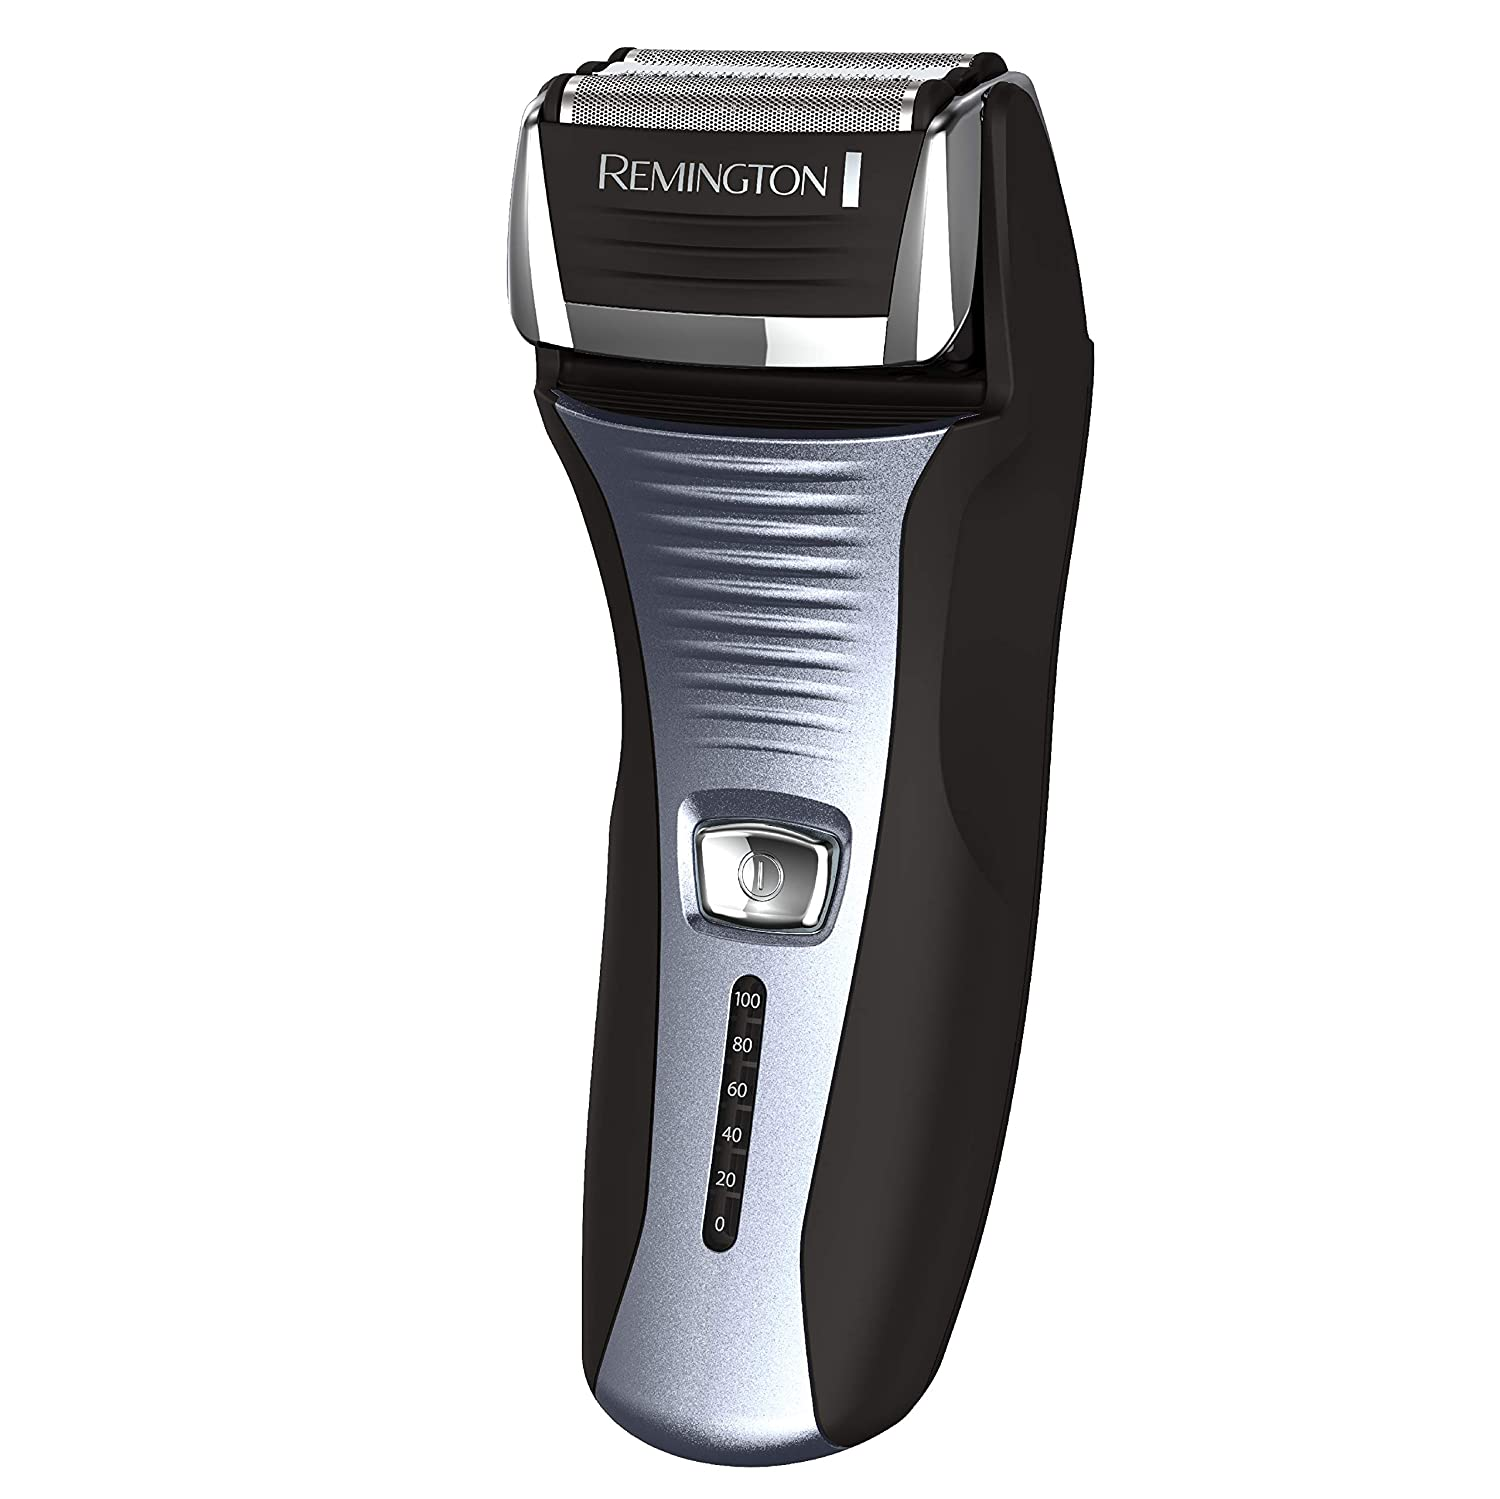 Remington F5 5800 Foil Shaver, best electric razors